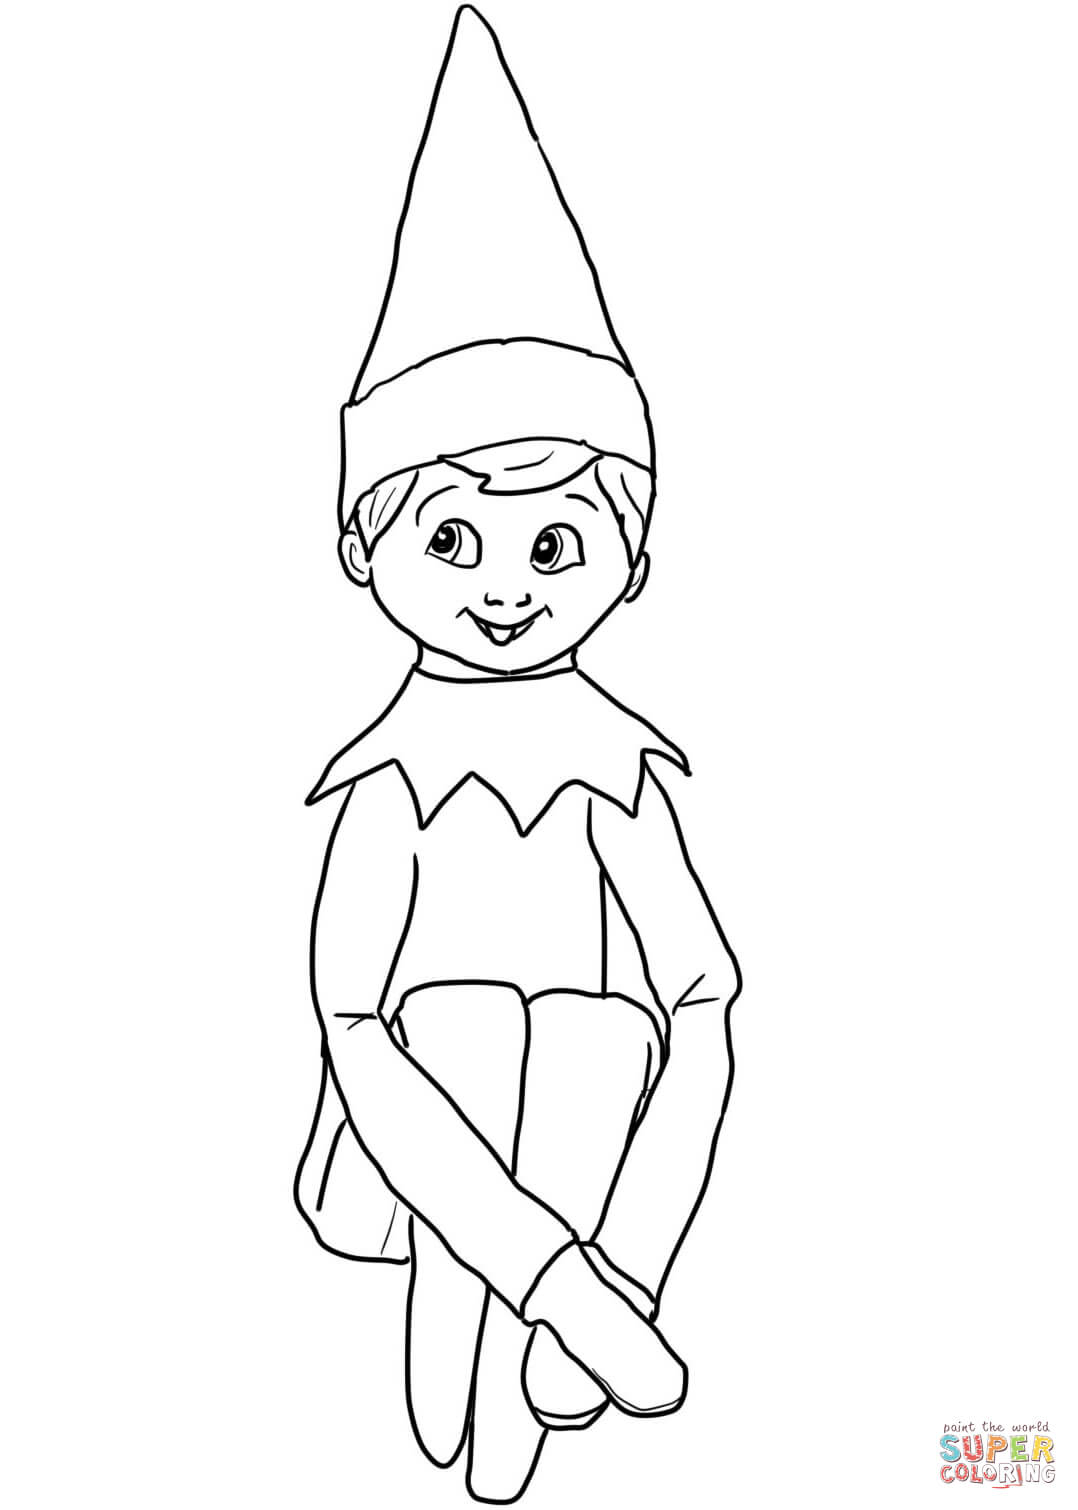 1078x1510 Elf On The Shelf Coloring Page Printable Coloring Pages